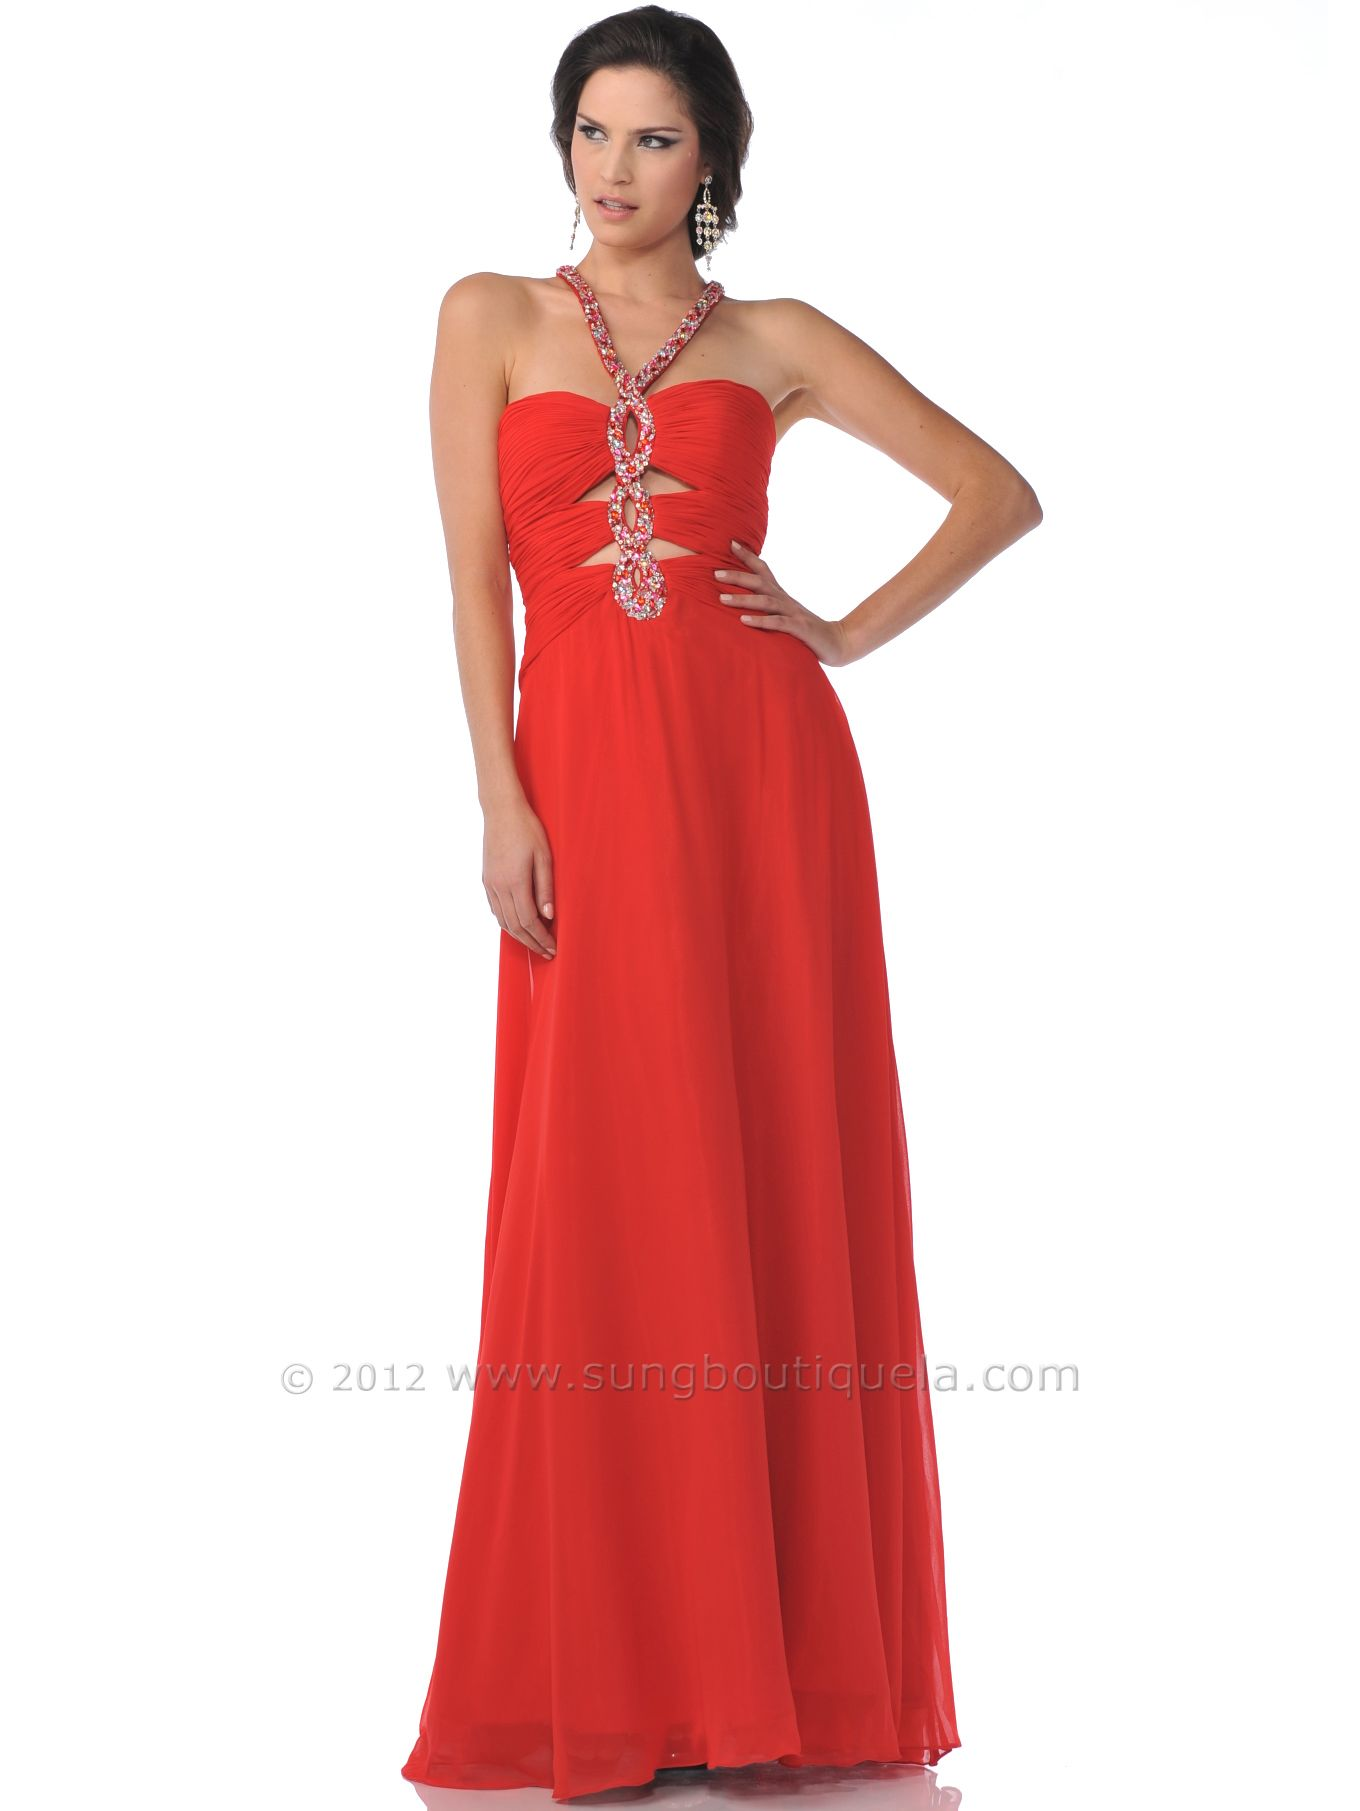 J adore red dress halter good style dresses pinterest prom